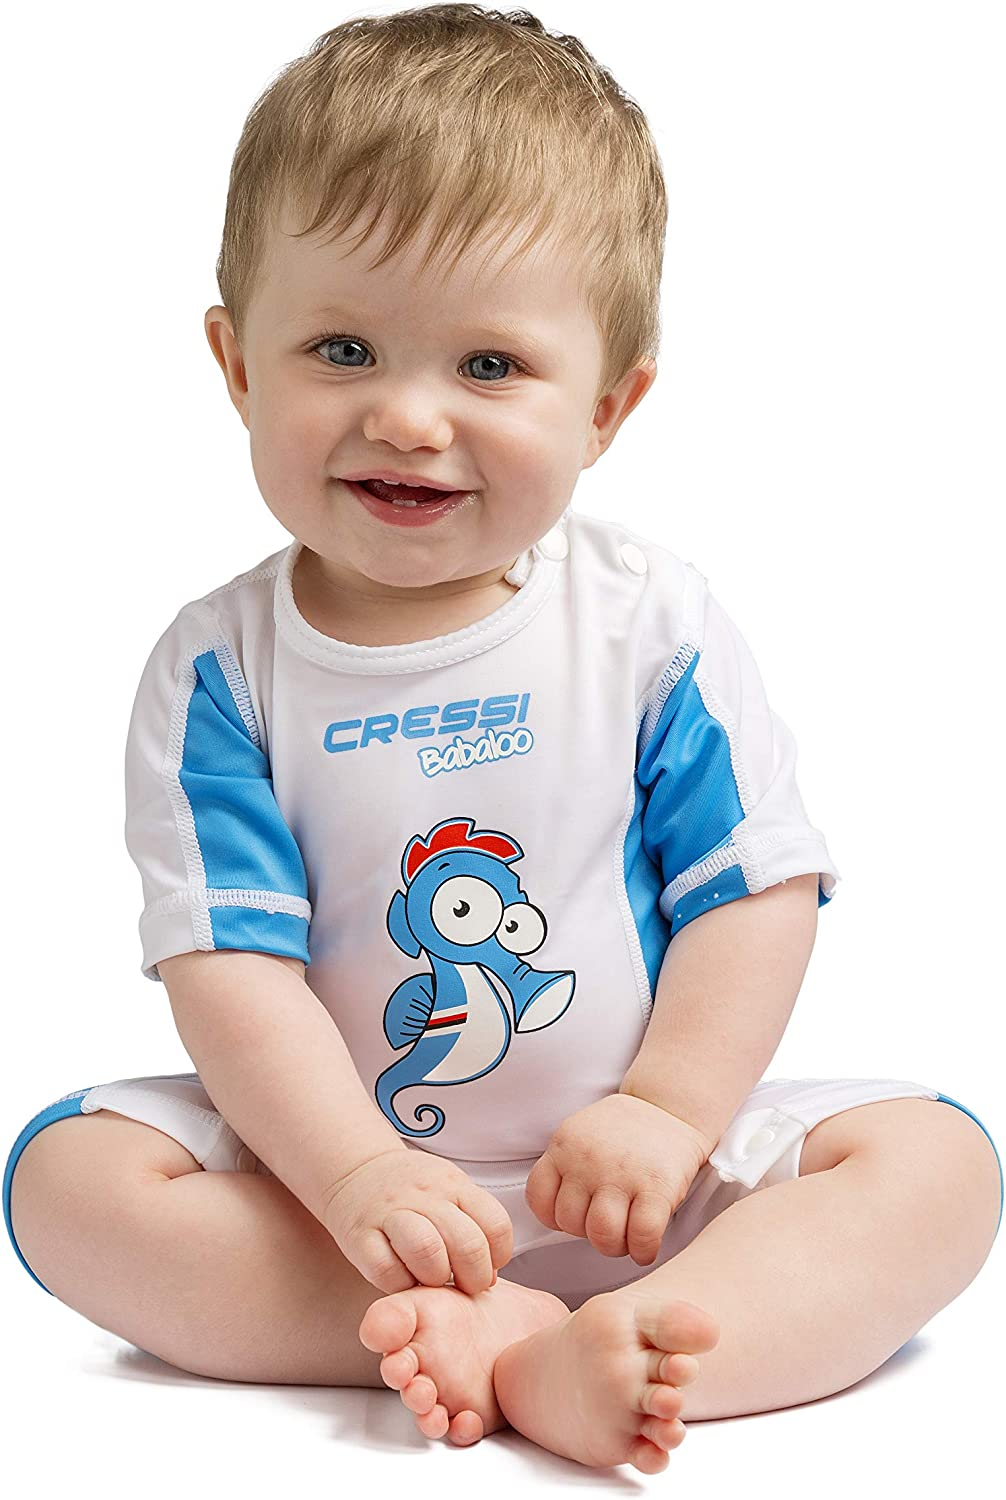 Cressi Toddlers and Babies Sun Protection Full Rash Guard for Swimming and Water Activities